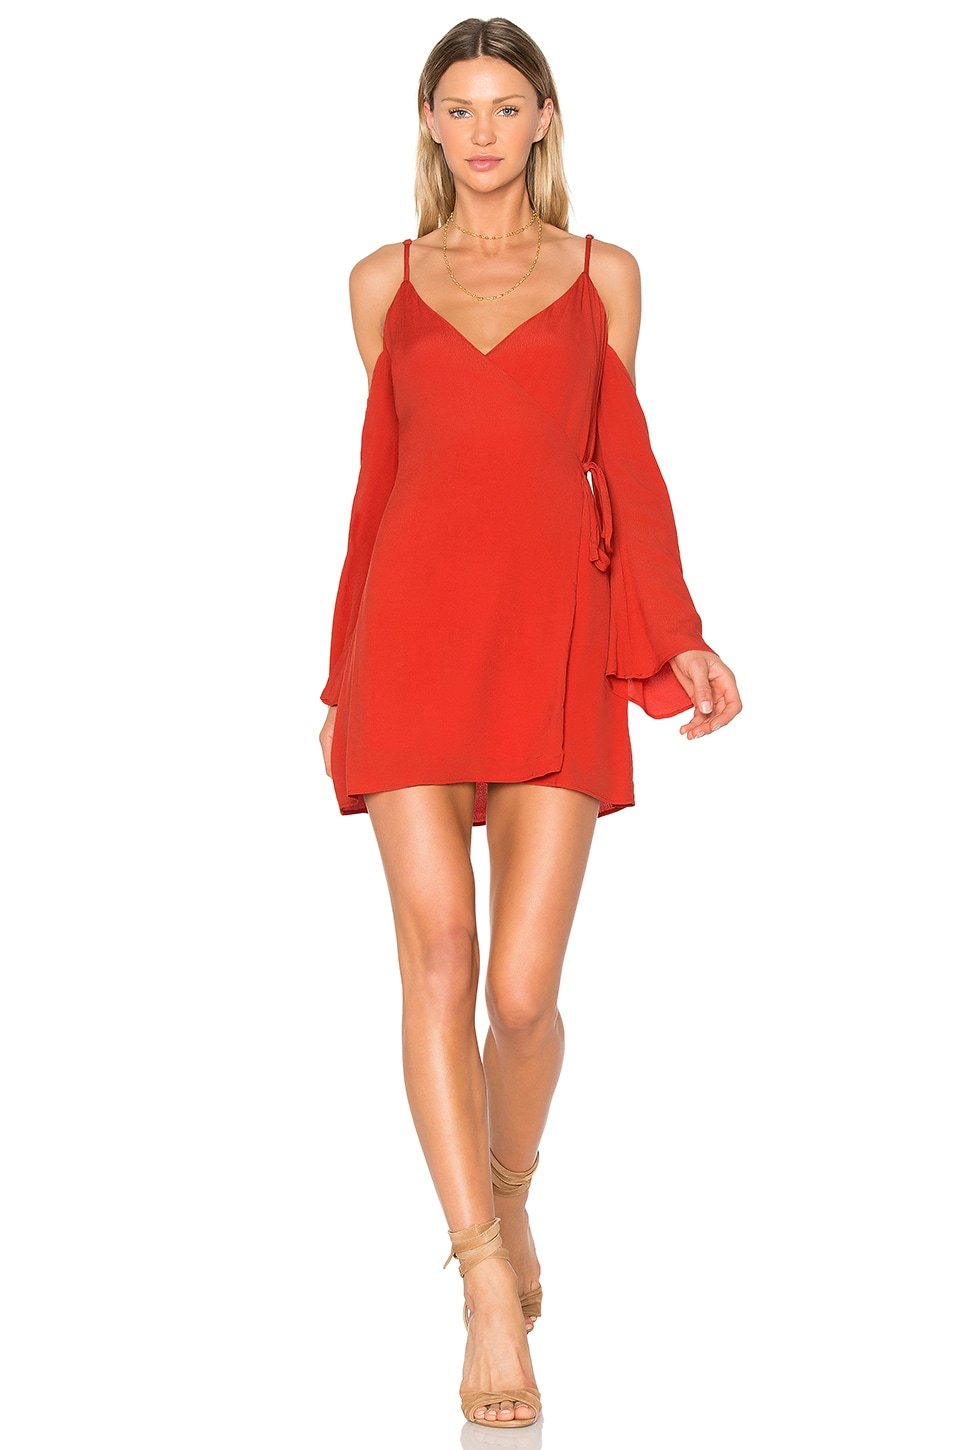 Lovers + Friends Love Letter Dress in Red